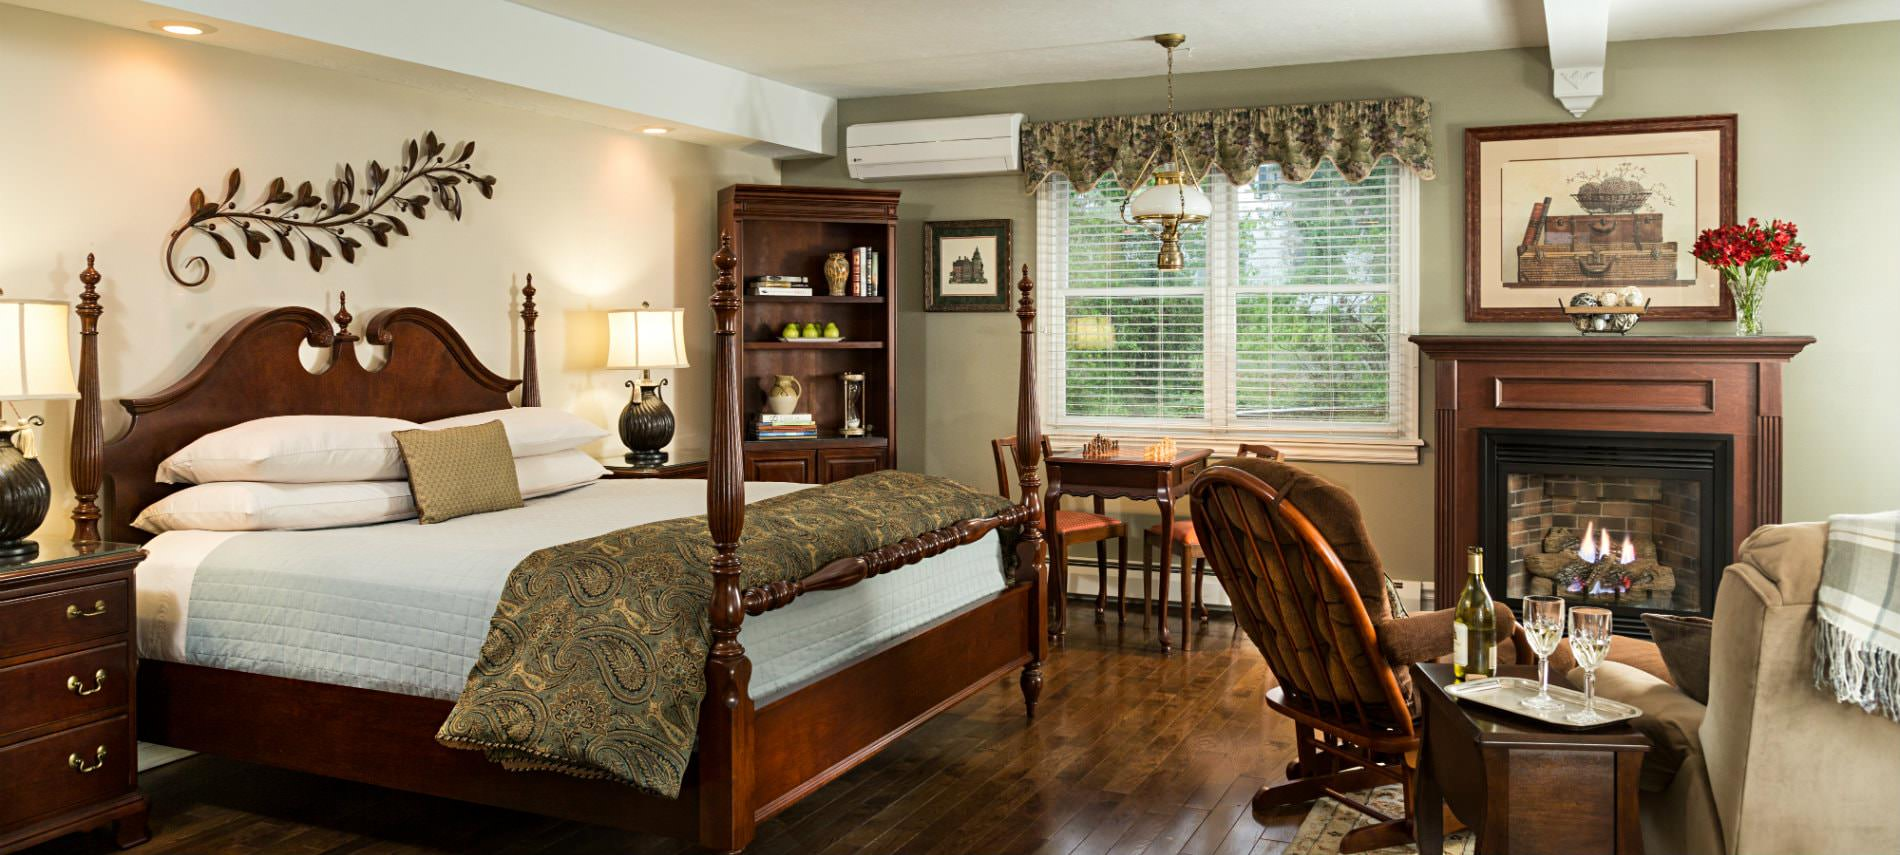 Beige and sage room, wood floors, four poster bed with matching night stands, sitting area with fireplace and double window